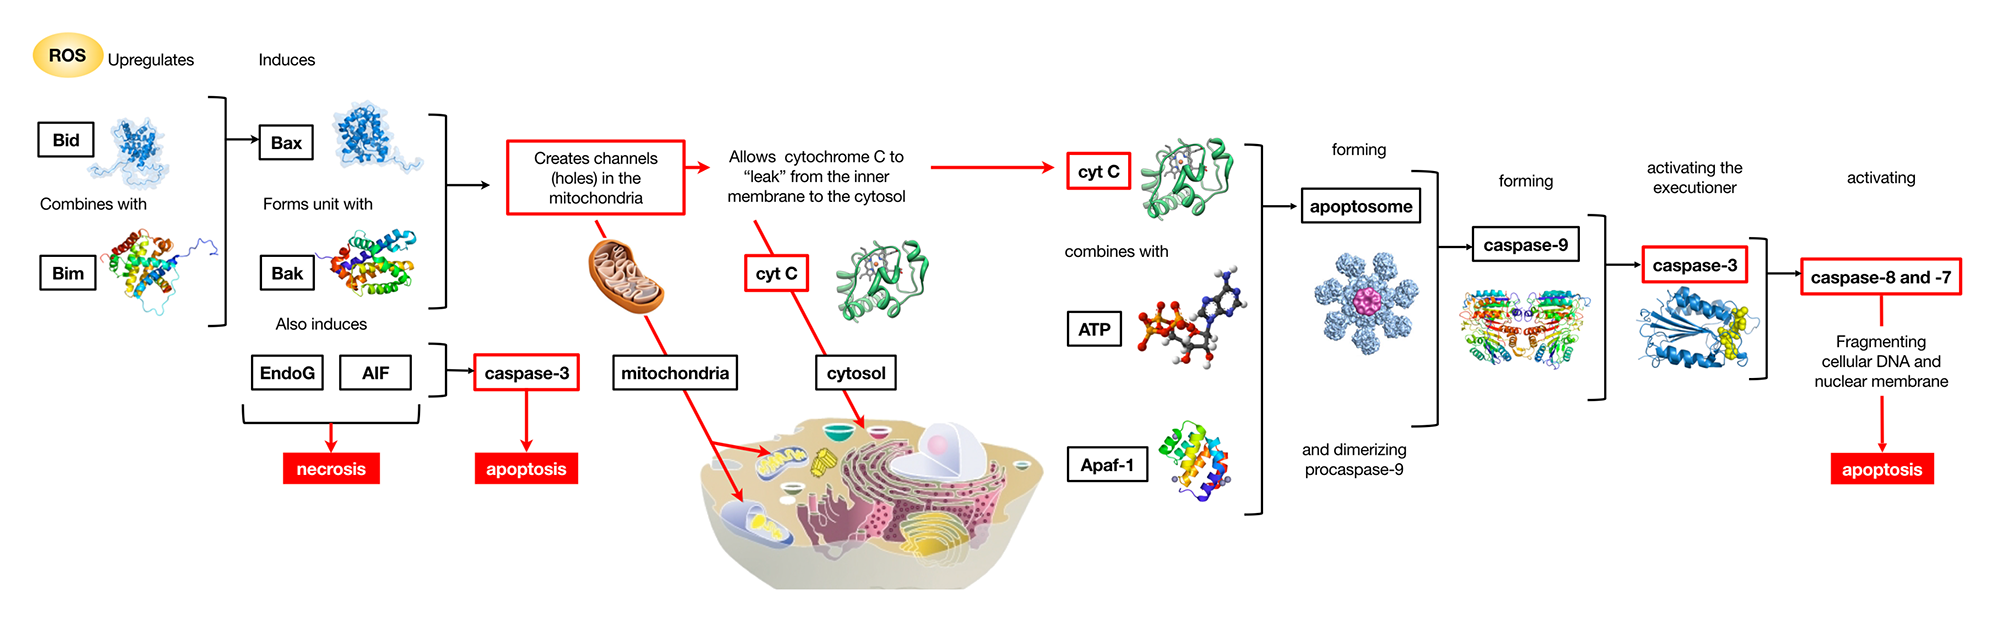 Mechanism of action for ROS-induced cell death cascade